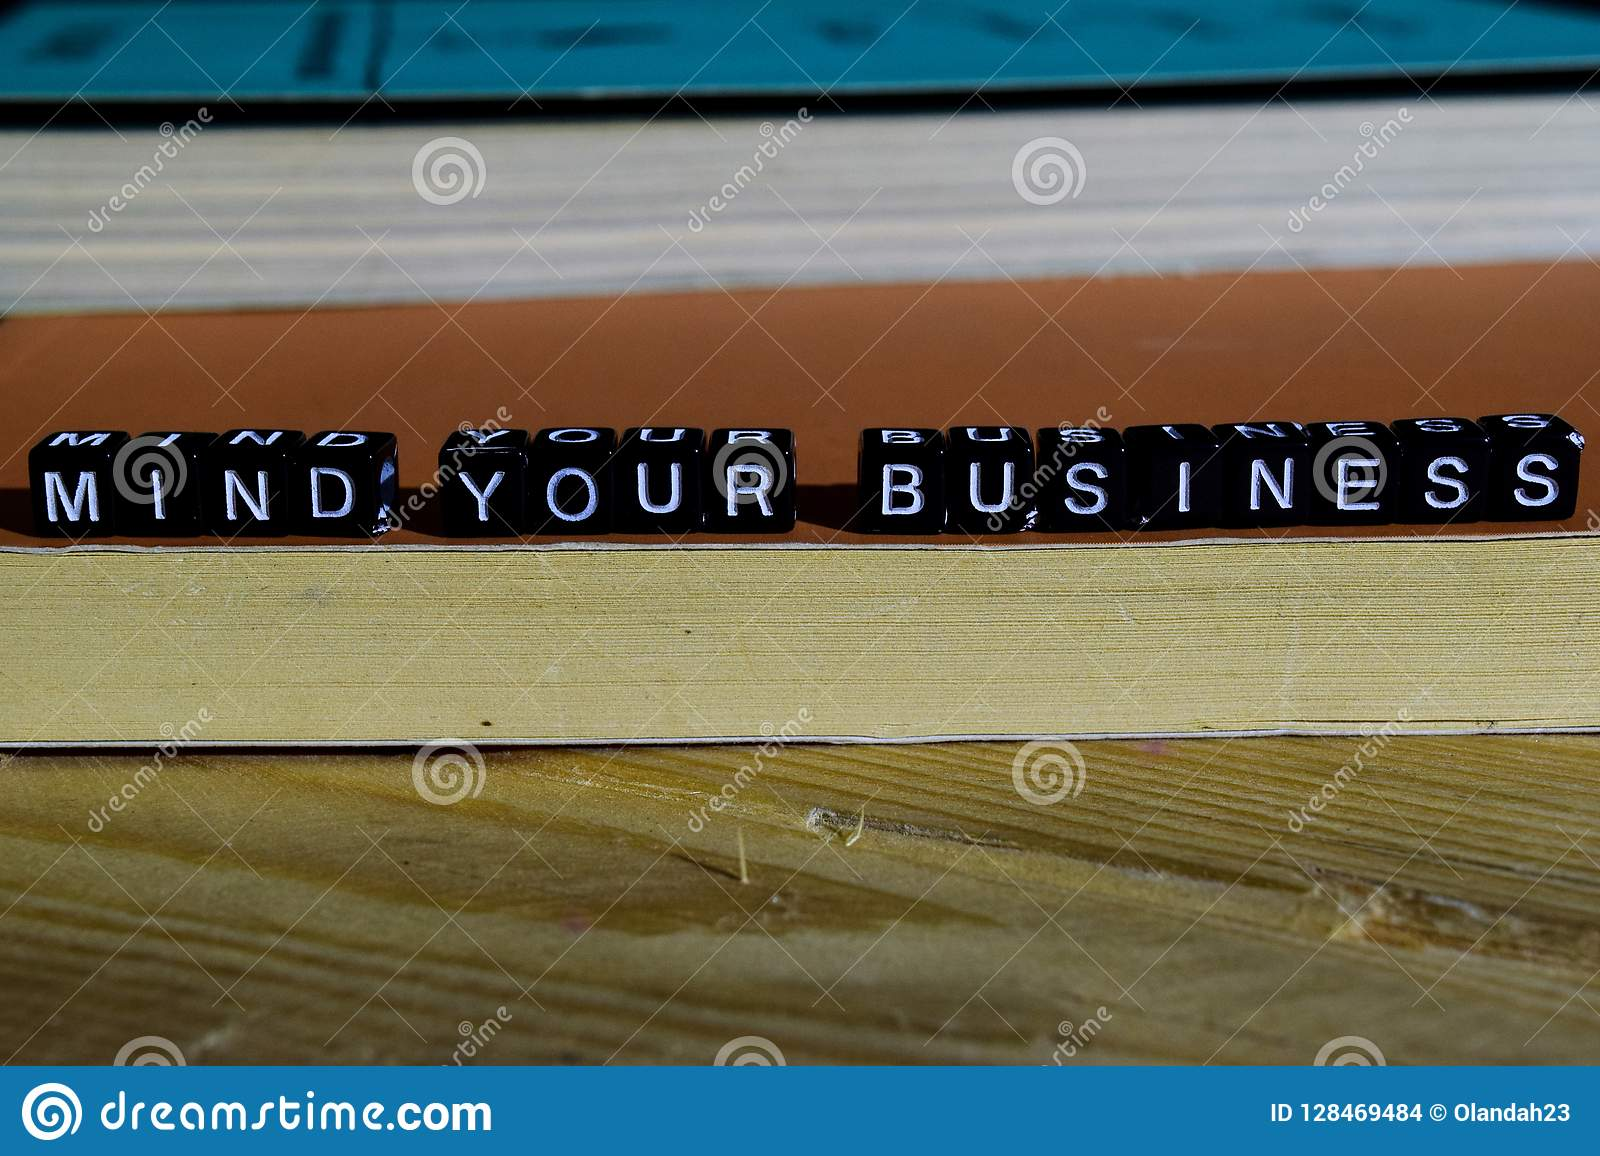 Mind your business on wooden blocks. Motivation and inspiration concept